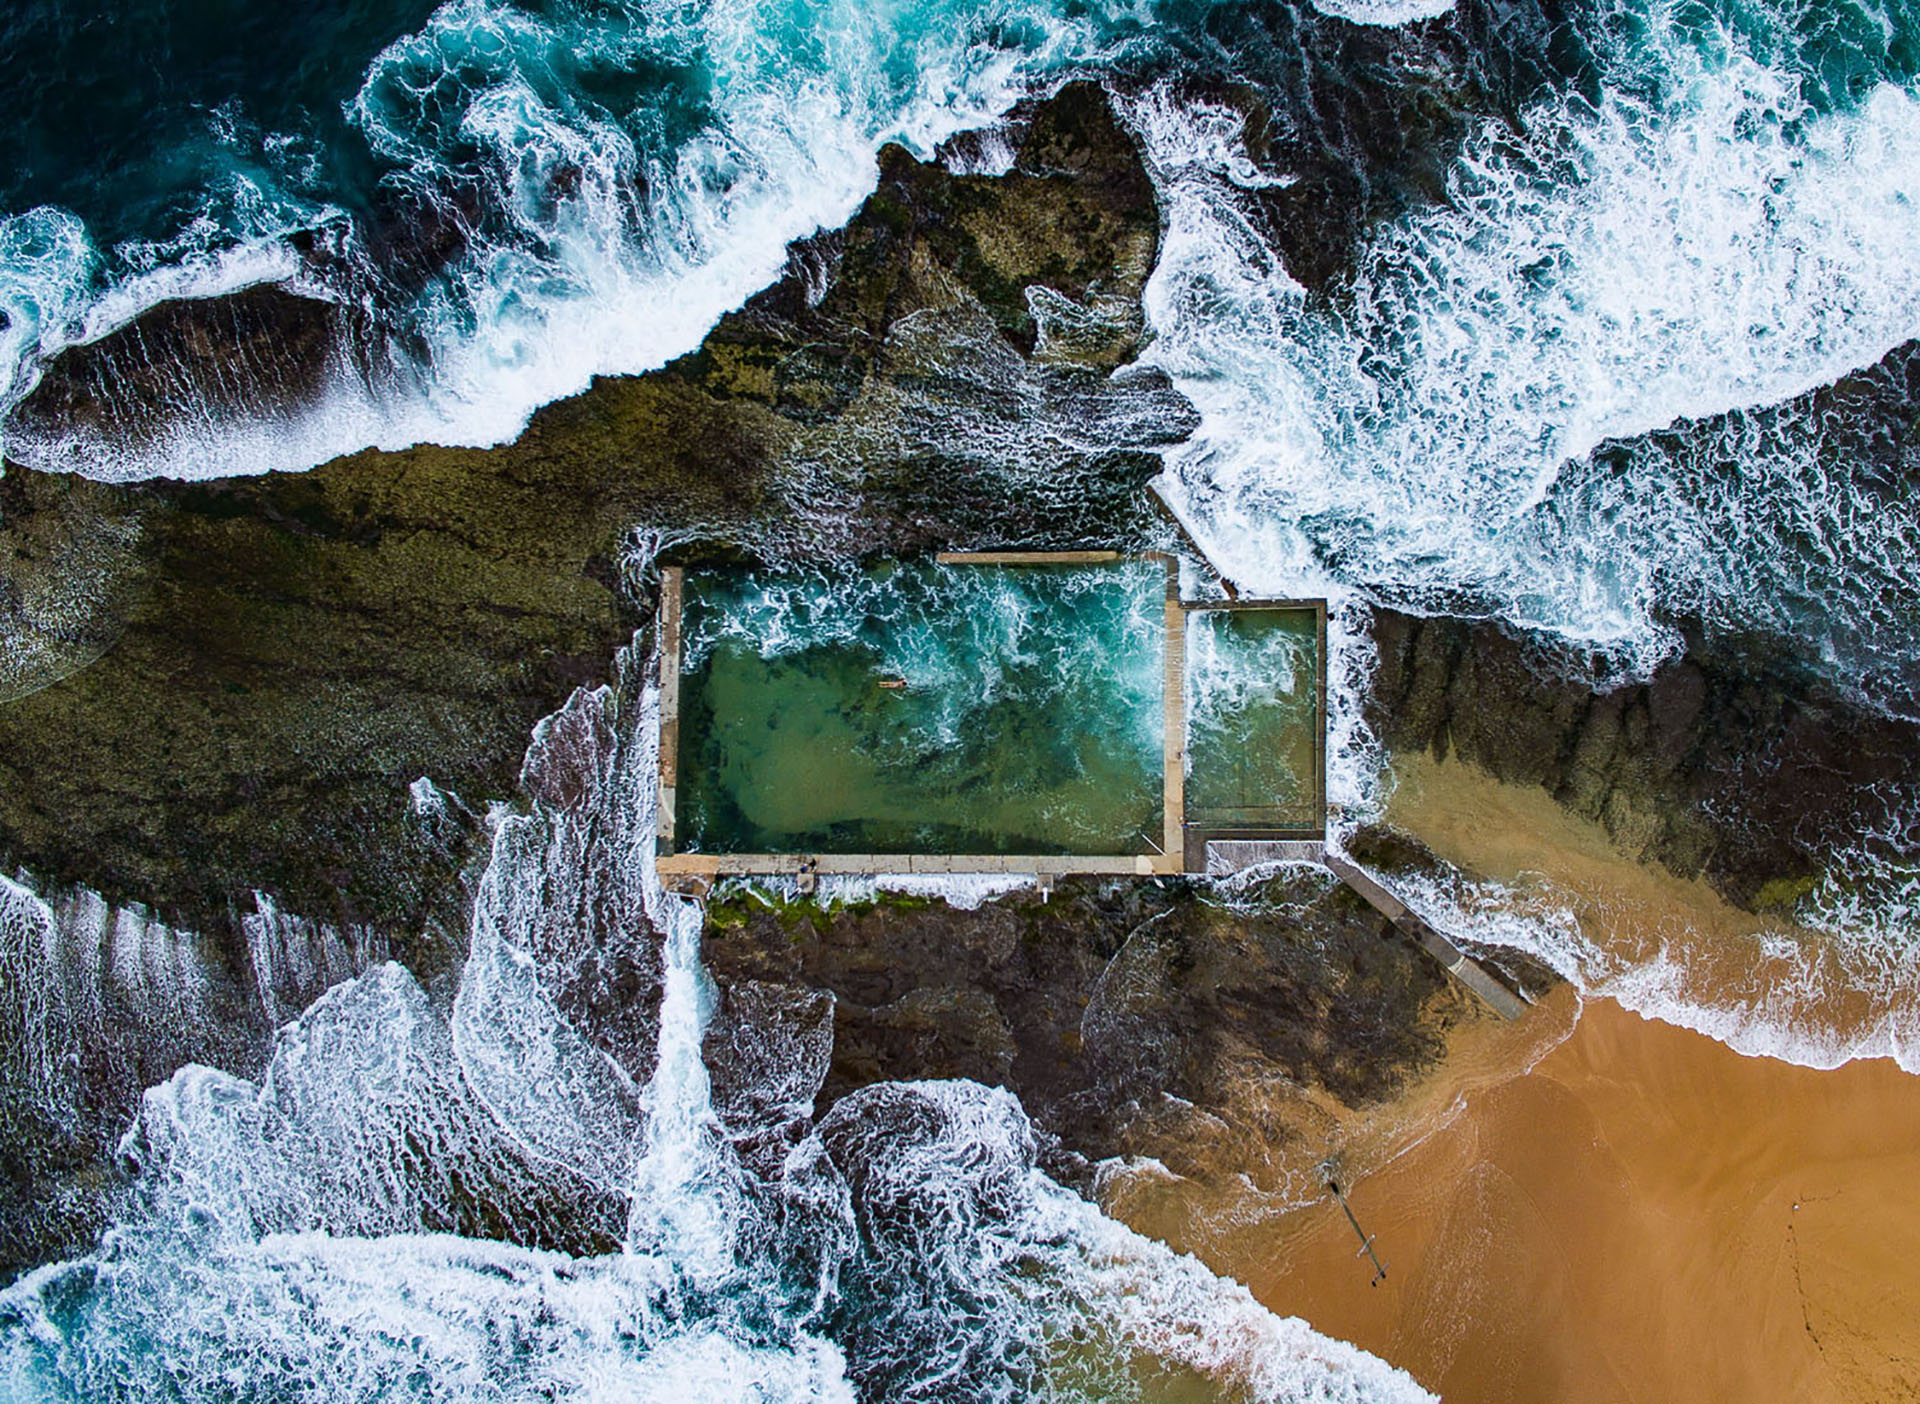 A rock pool in sydney, Australia at high tide. Waves crash over the edge. a long swimmer is undeterred.